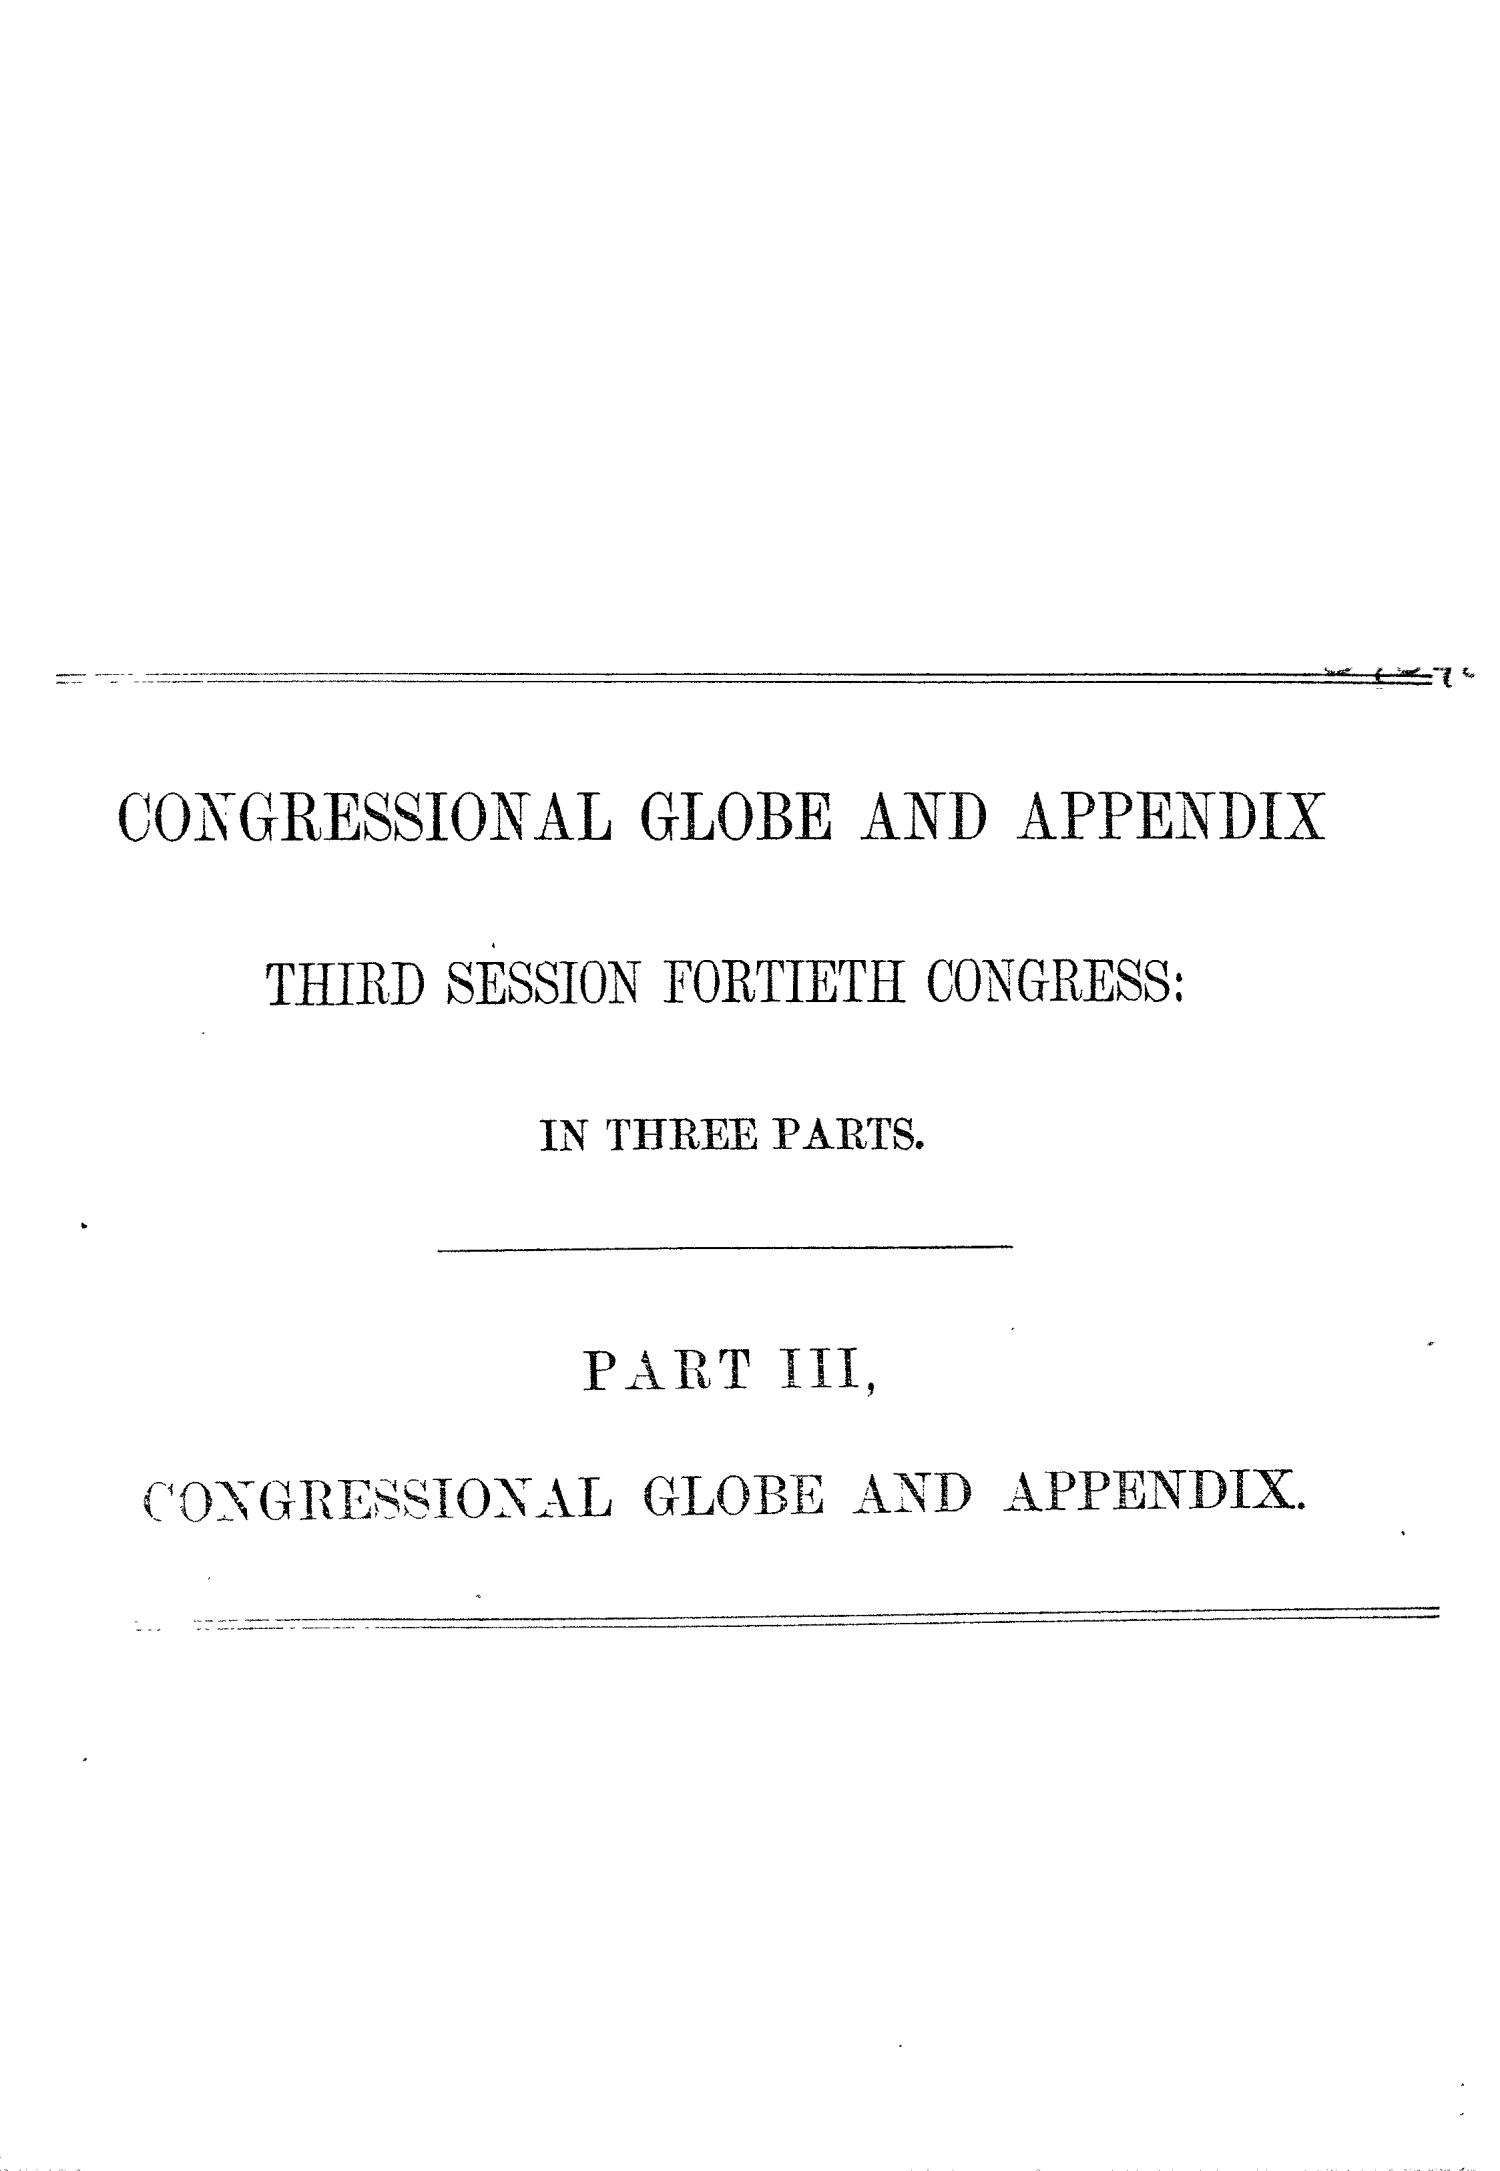 The Congressional Globe: Containing the Debates and Proceedings of the Third Session Fortieth Congress; Together with an Appendix, Comprising the Laws Passed at that Session                                                                                                      None